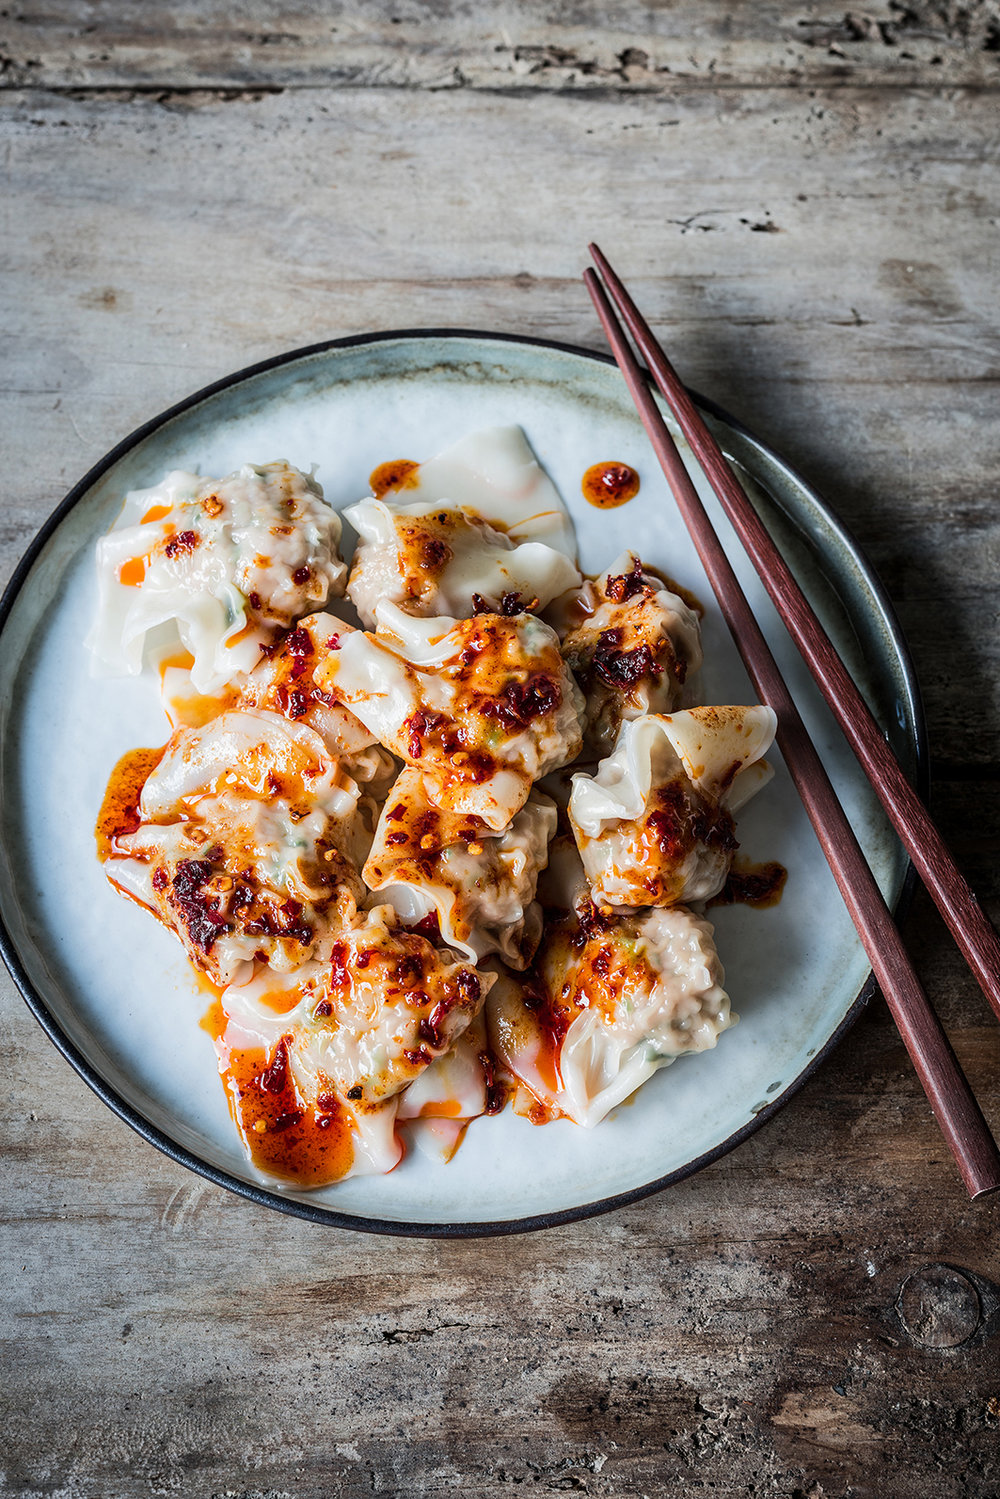 JUICY PORK & CORIANDER WONTONS - Really easy and delicious pork and coriander wontons with black vinegar and chili oil.